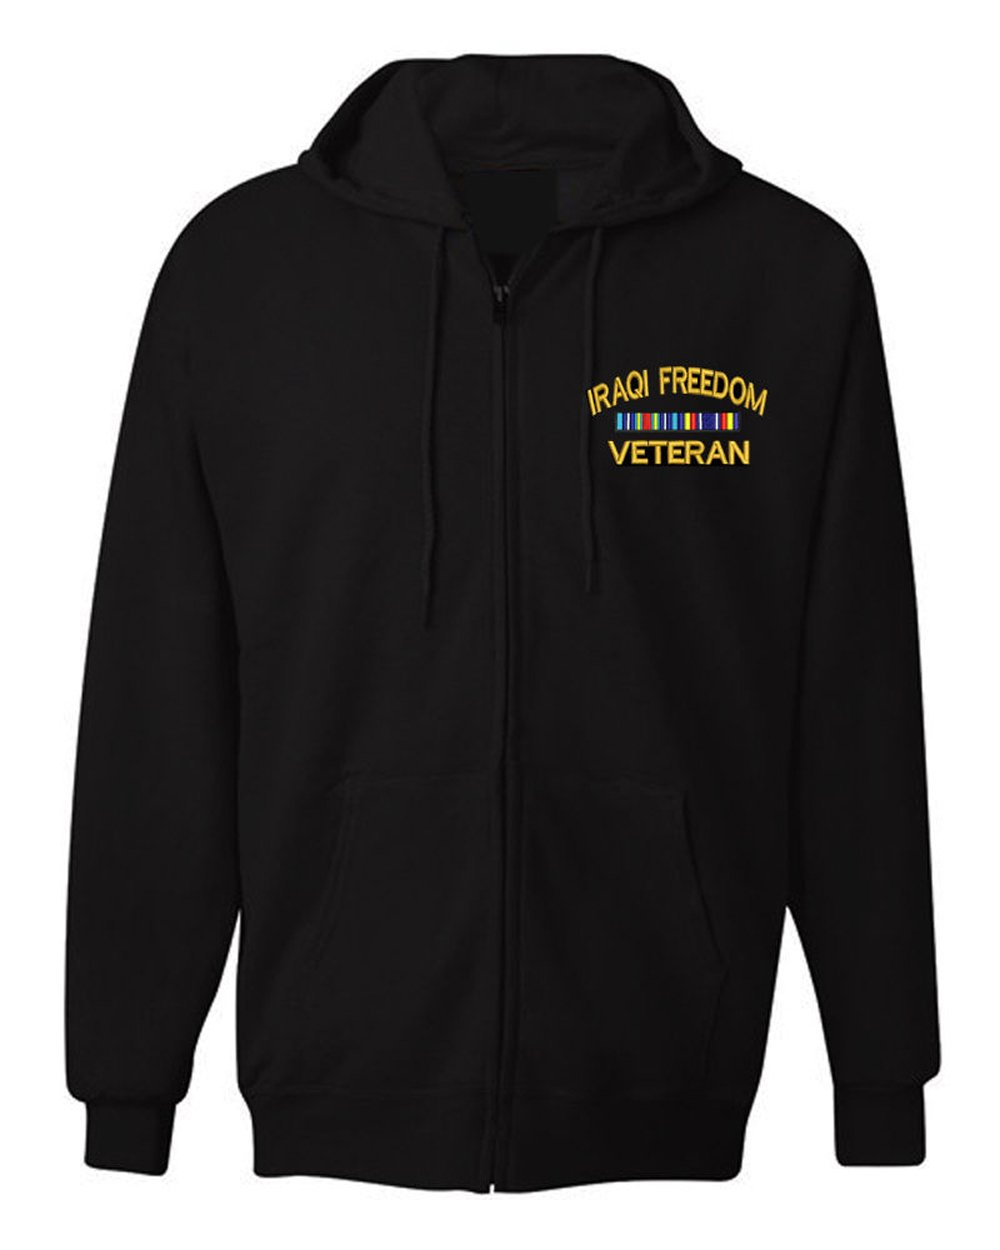 American Law Enforcement Military Iraqi Freedom Veteranジャケットジッパーhoodie-3 X L B01M1UOVJC